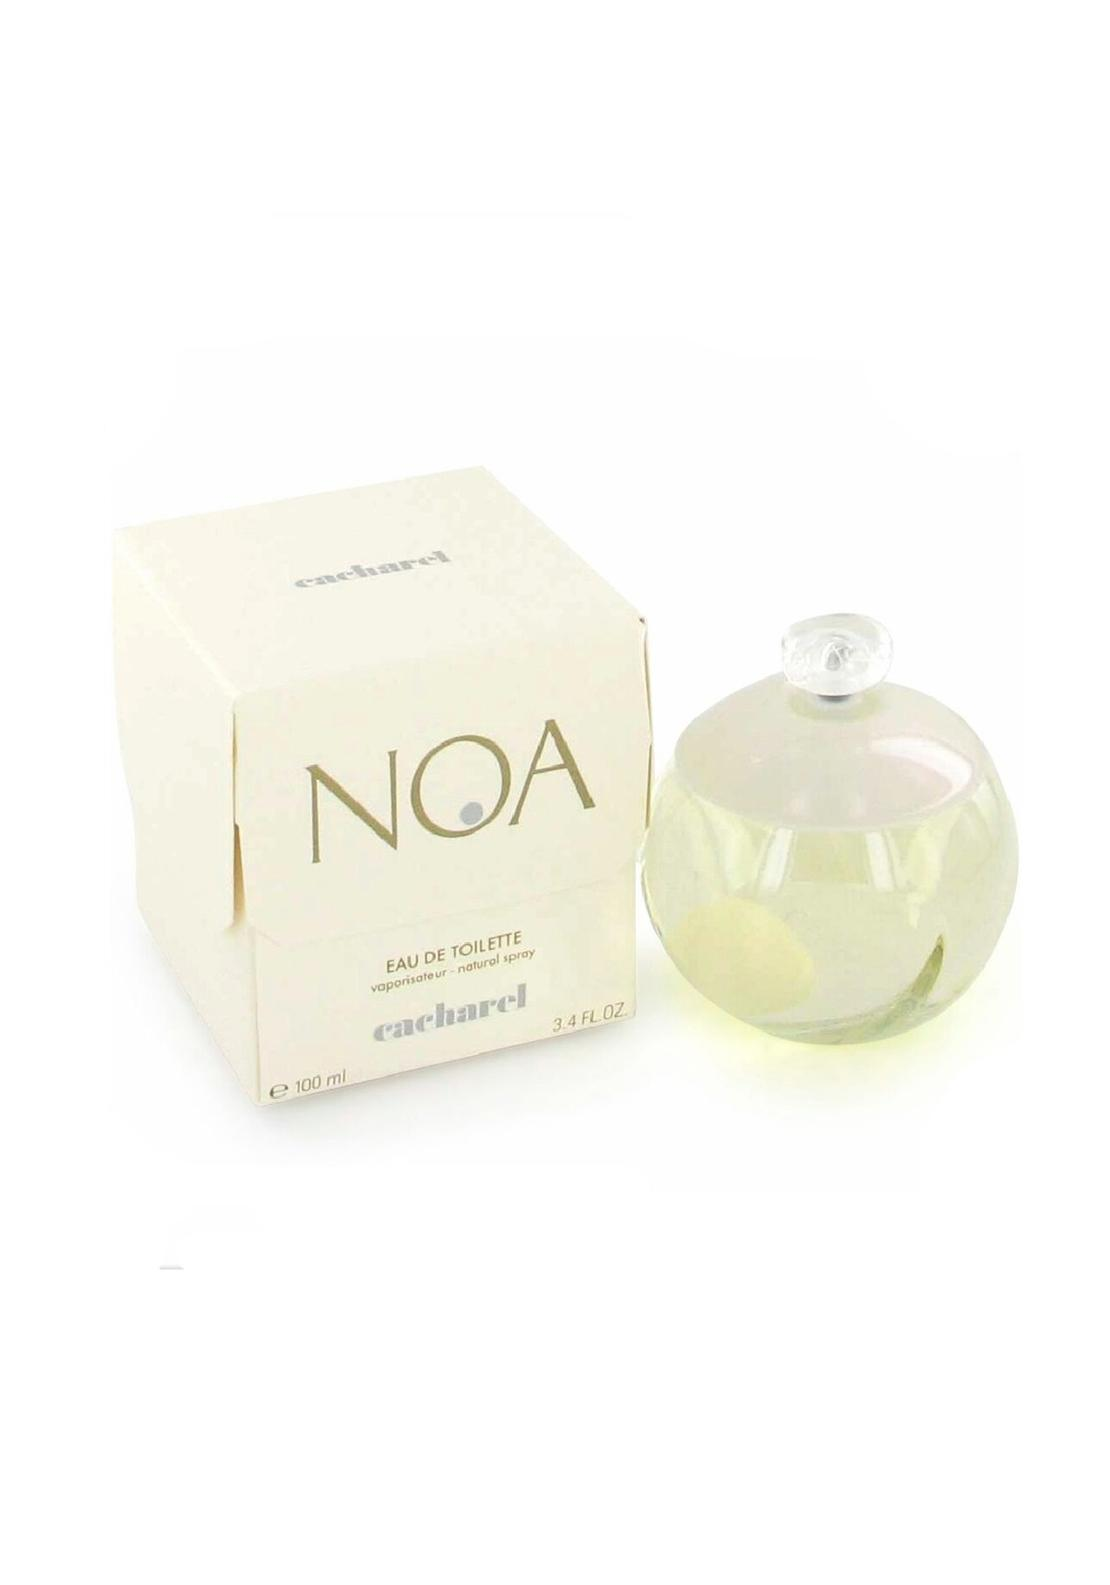 Cacharel Noa Eau De Toilette, 30ml